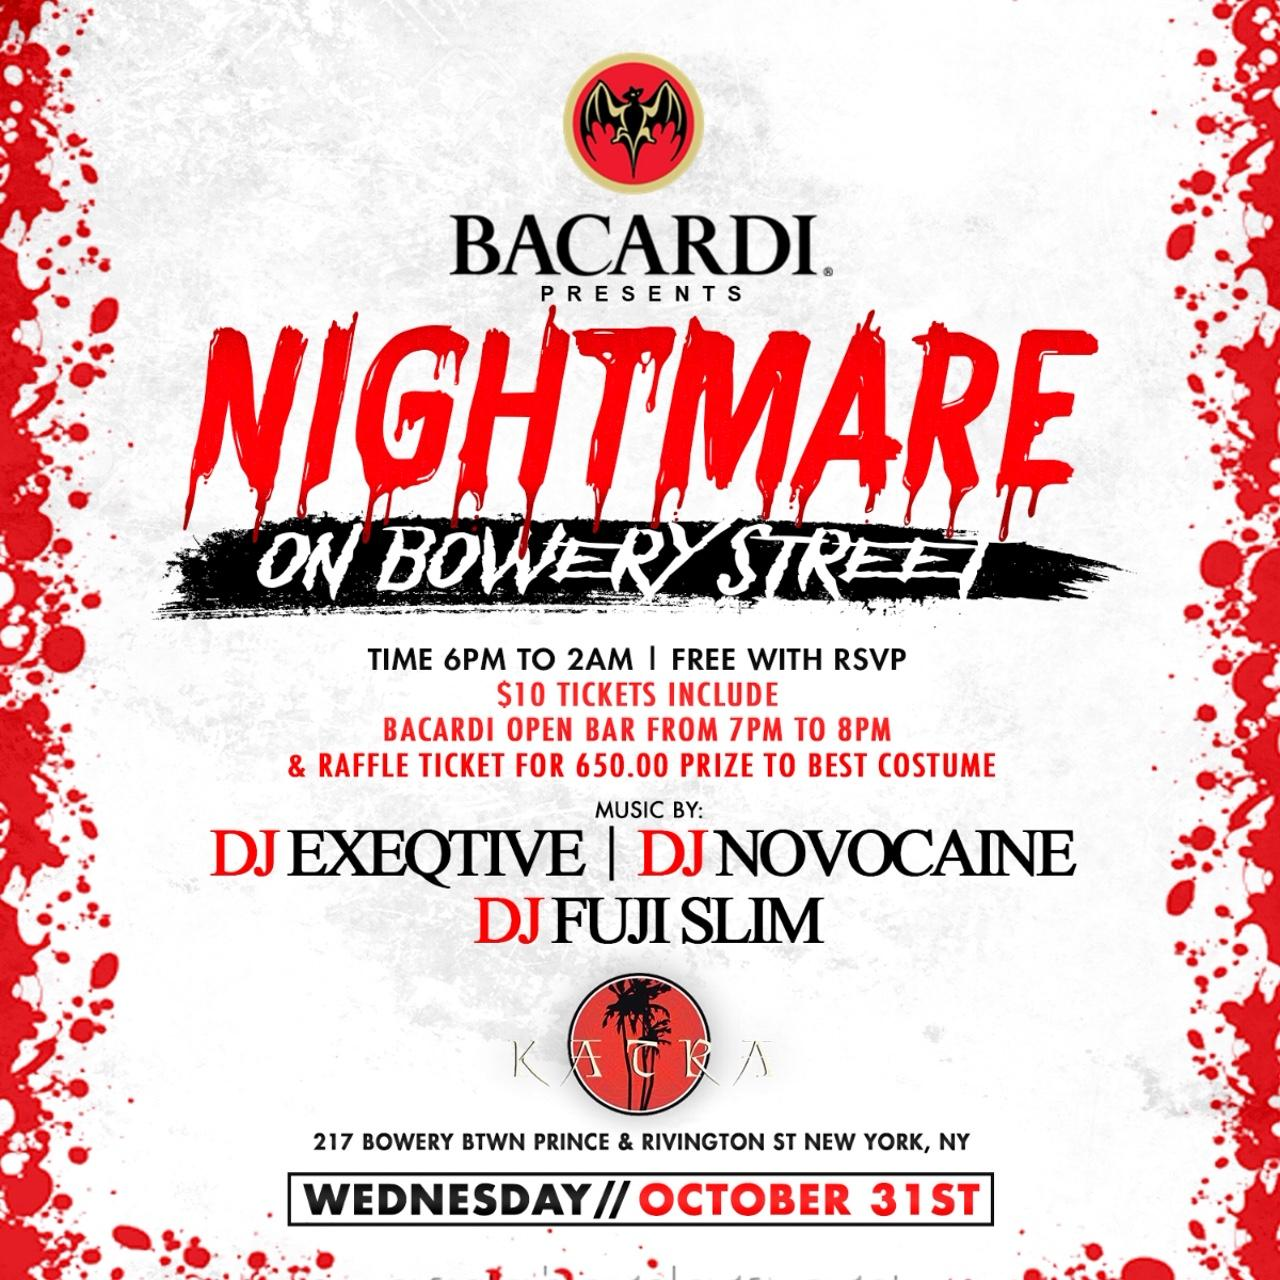 Bacardi Presents Nightmare On Bowery St (1 Hour Open Bar)